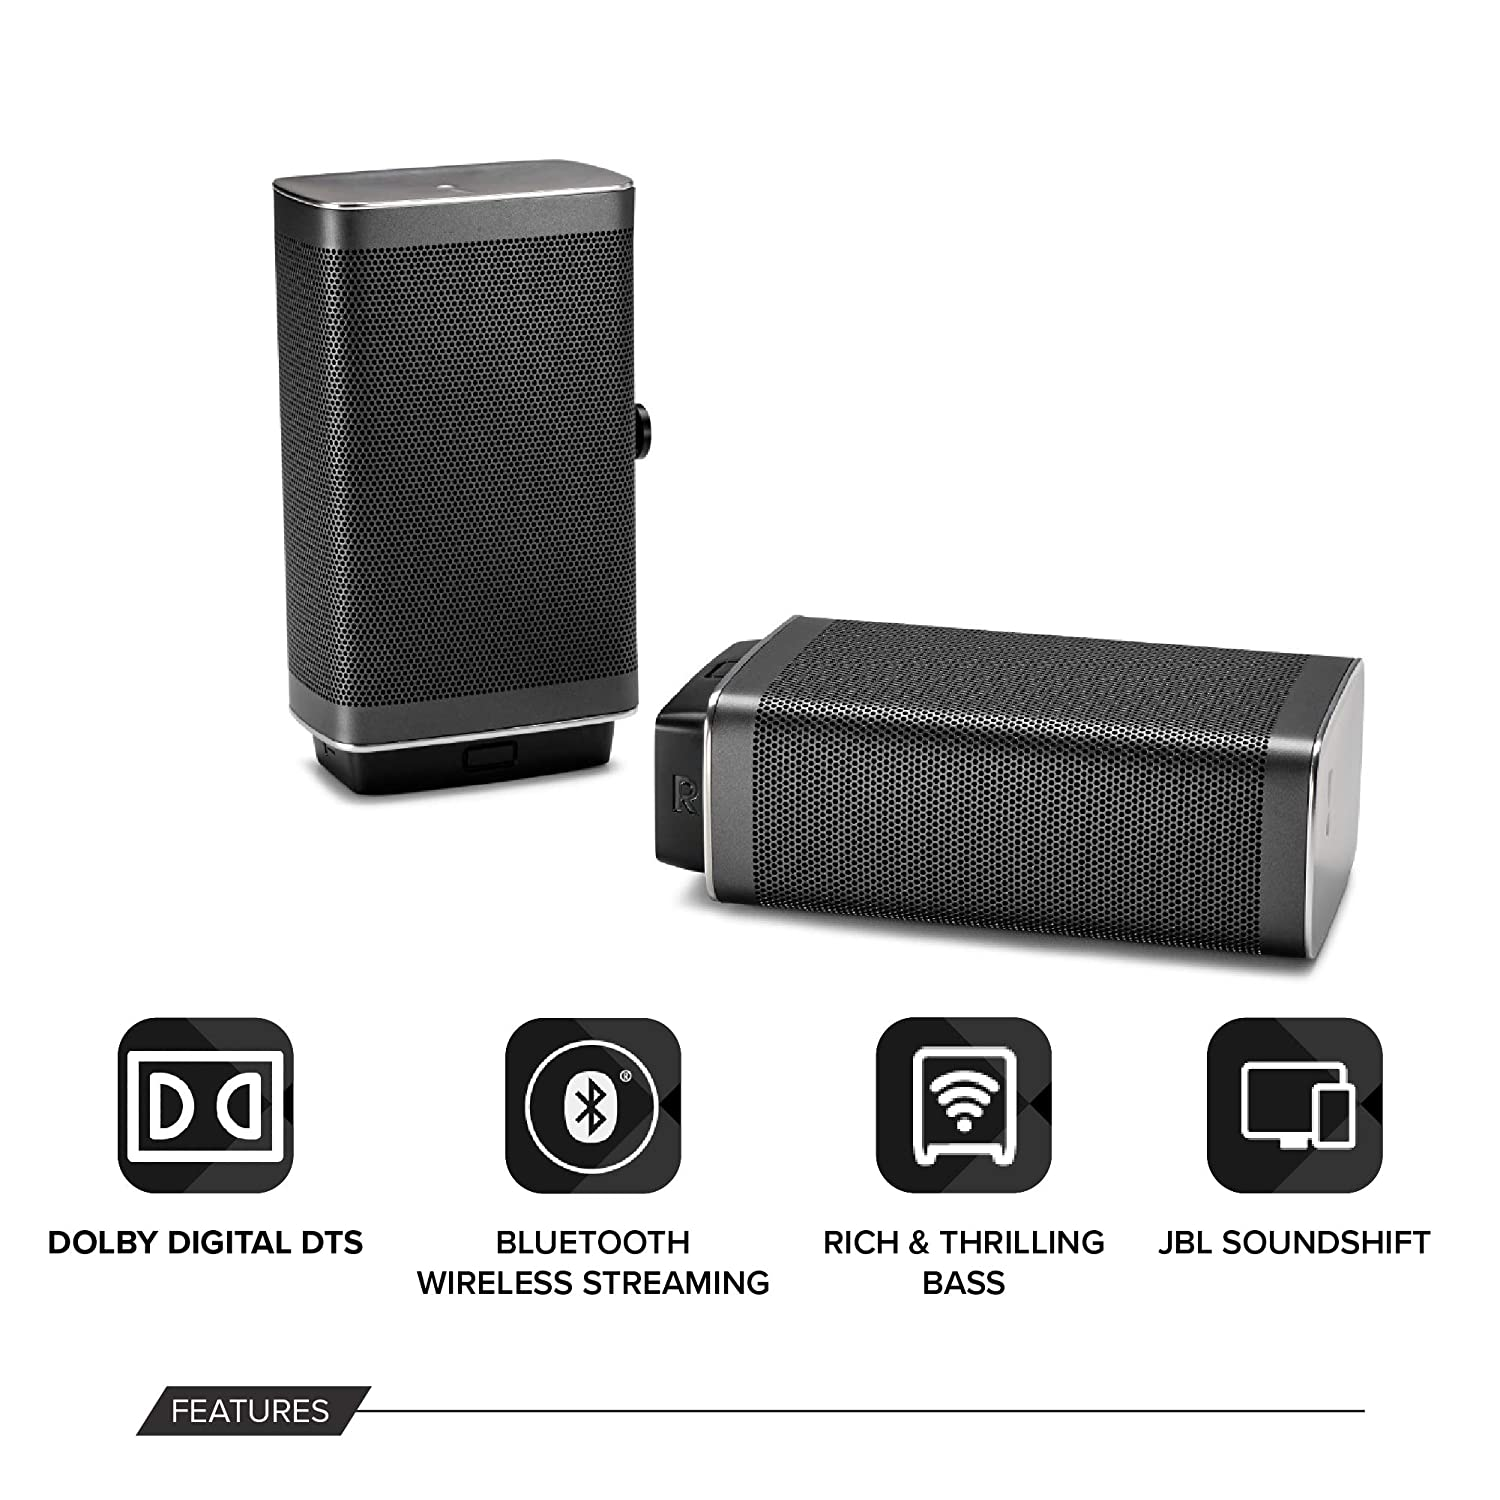 Jbl Home Speakers System Diagram Free Download Wiring Diagram